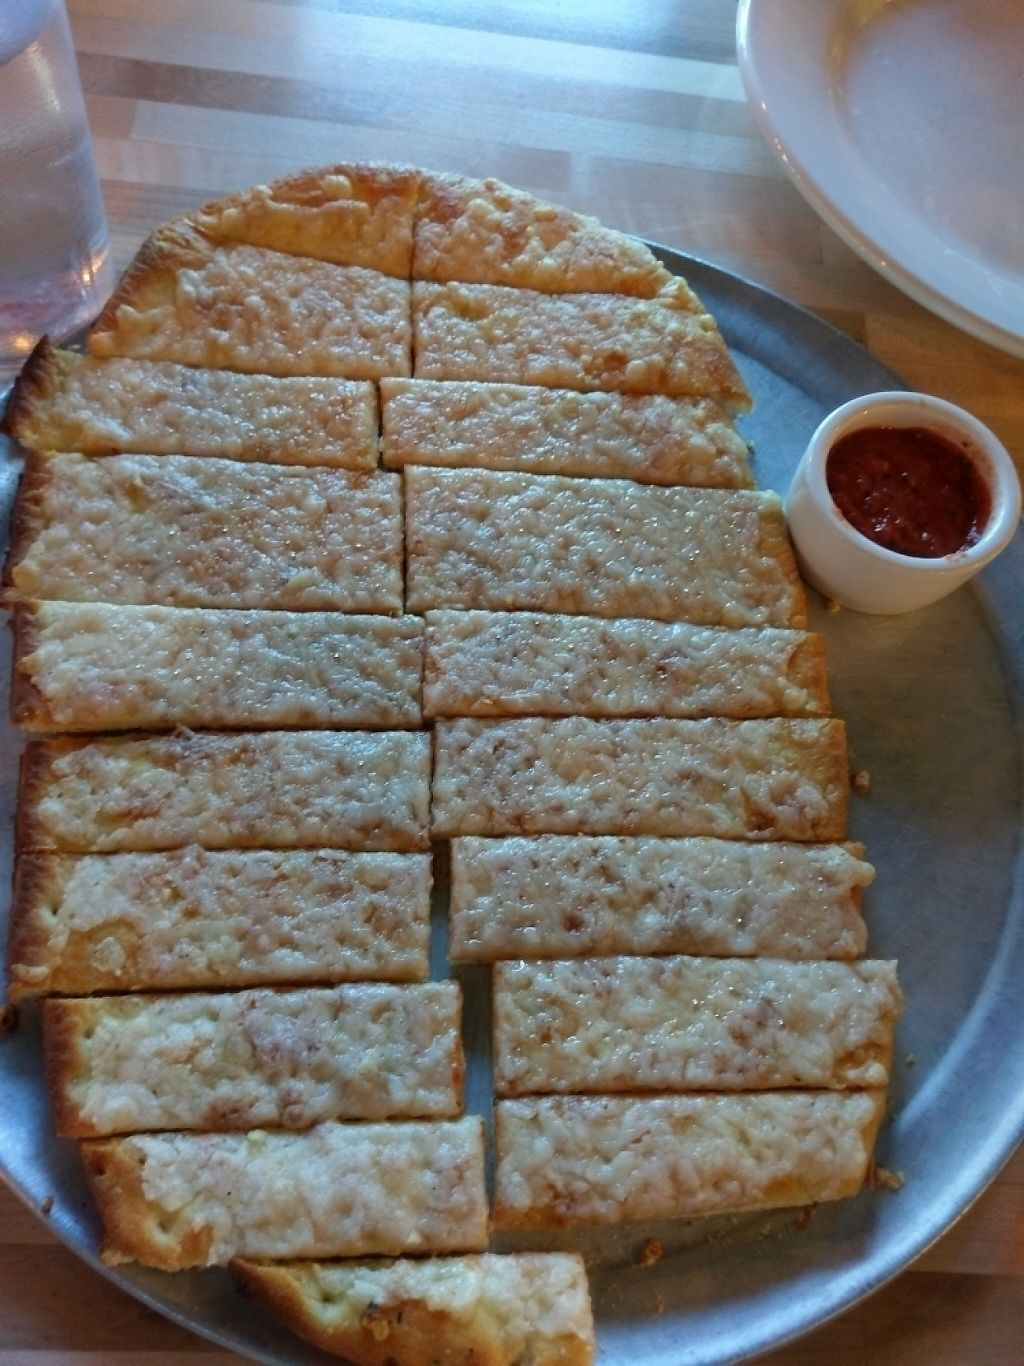 "Photo of Bend PIzza Kitchen  by <a href=""/members/profile/JessicaFullerGall"">JessicaFullerGall</a> <br/>Vegan garlic  cheese breadsticks <br/> April 8, 2017  - <a href='/contact/abuse/image/80256/245810'>Report</a>"